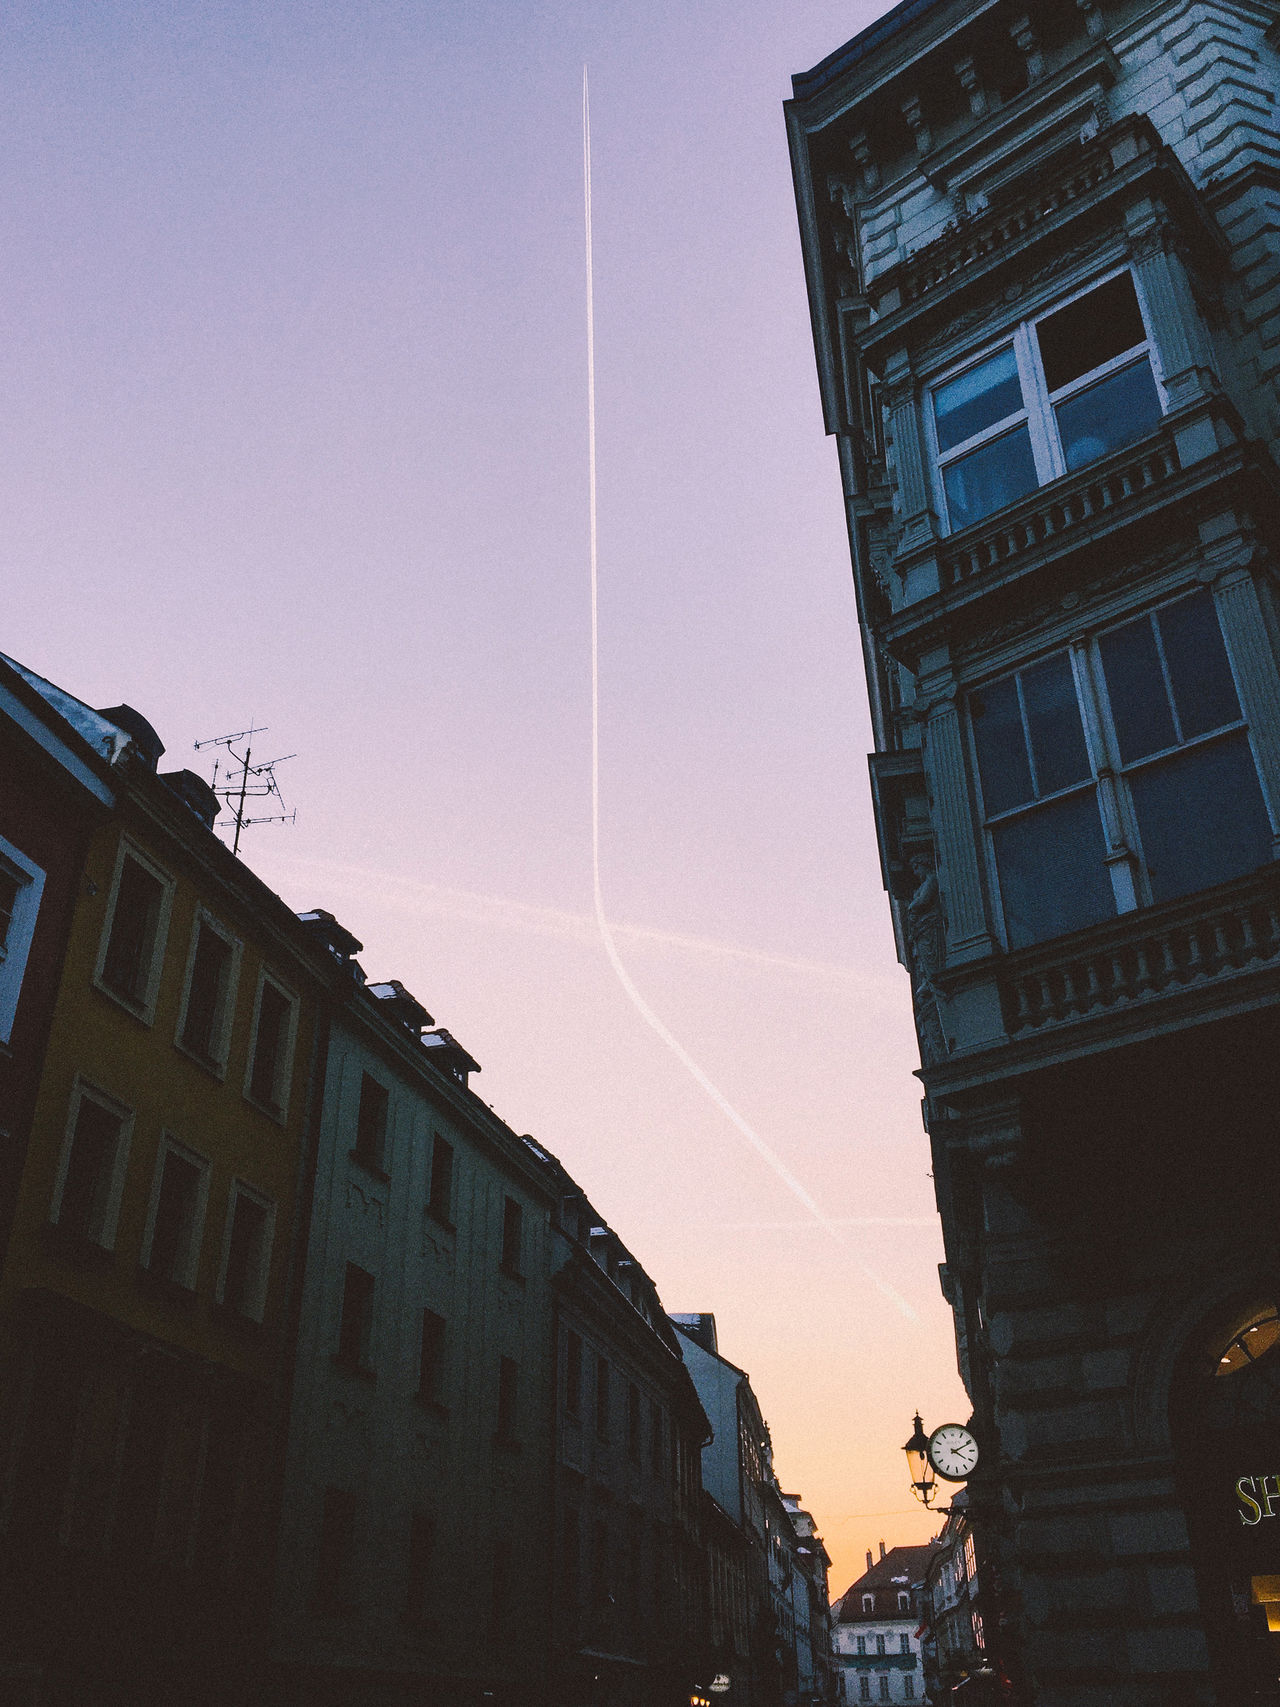 Adapted To The City Aeroplane Architecture Building Exterior Built Structure City Clock Curves Curves And Lines Day Escape Escape From Reality Evening Sky Flying Lines Low Angle View No People Outdoors Passing Time Sky Street Streetphotography Sunset Tranquility Transportation